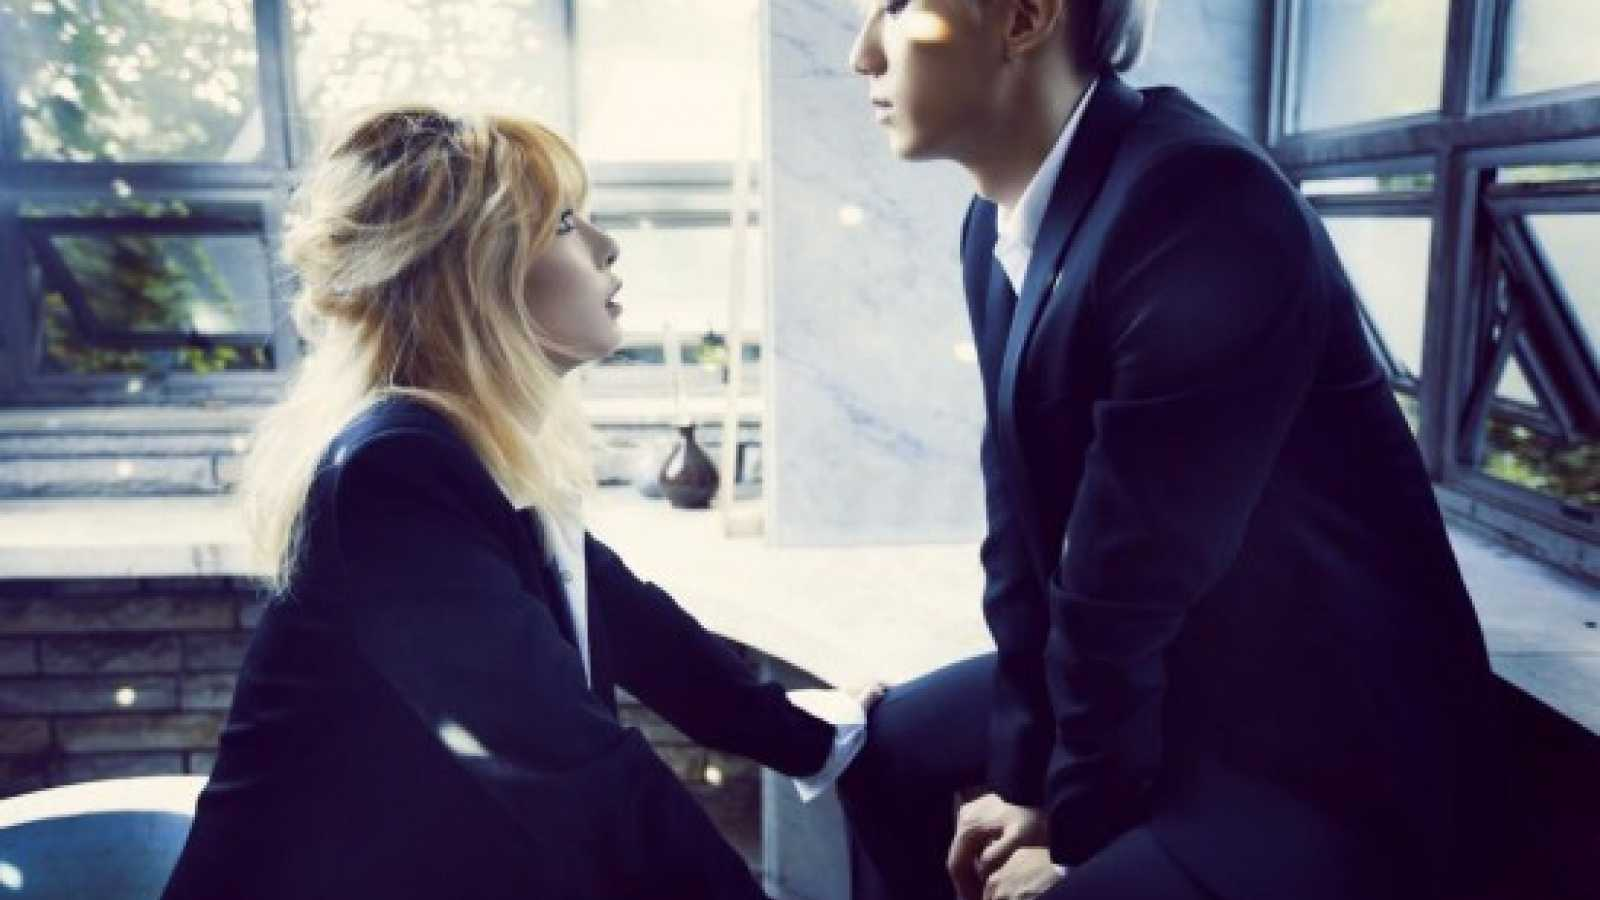 Trouble Maker © Cube Entertainment. All rights reserved